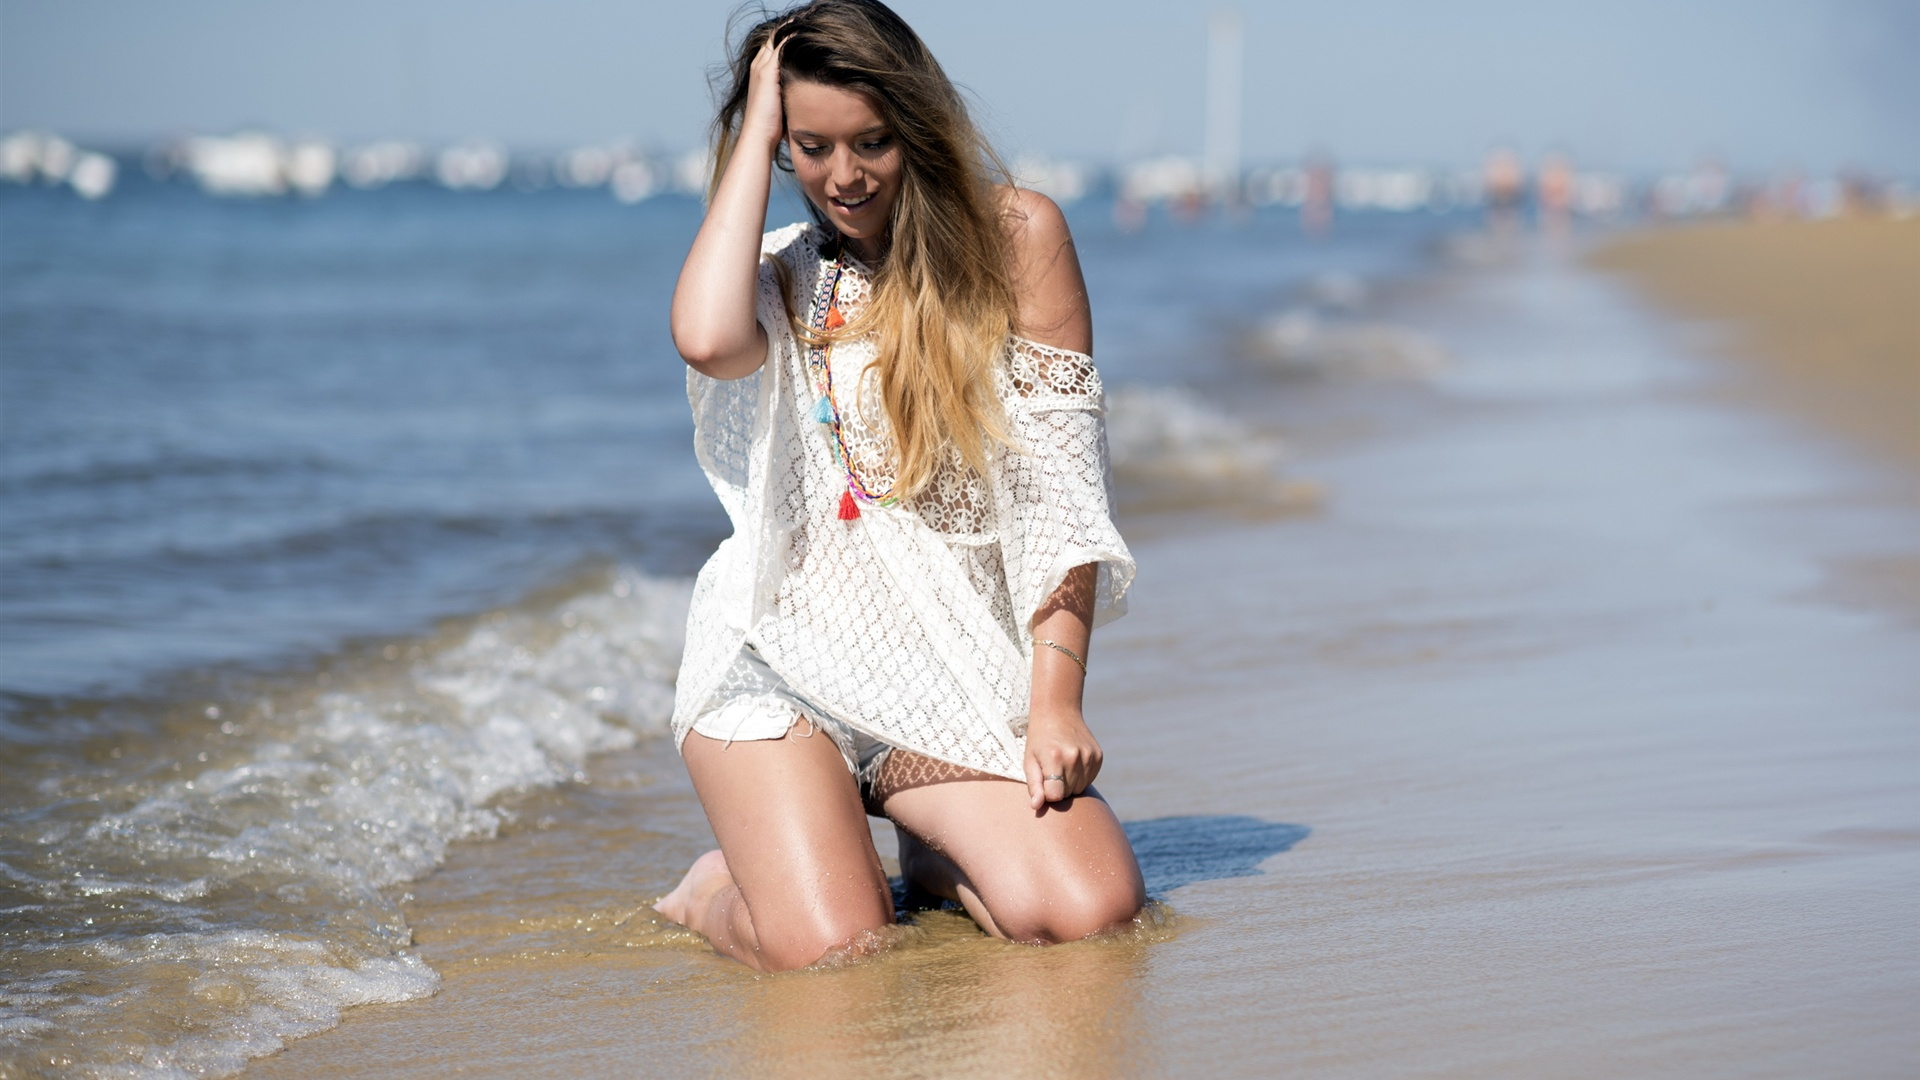 Wallpaper Summer Sea Beach Girl 2560x1600 Hd Picture Image